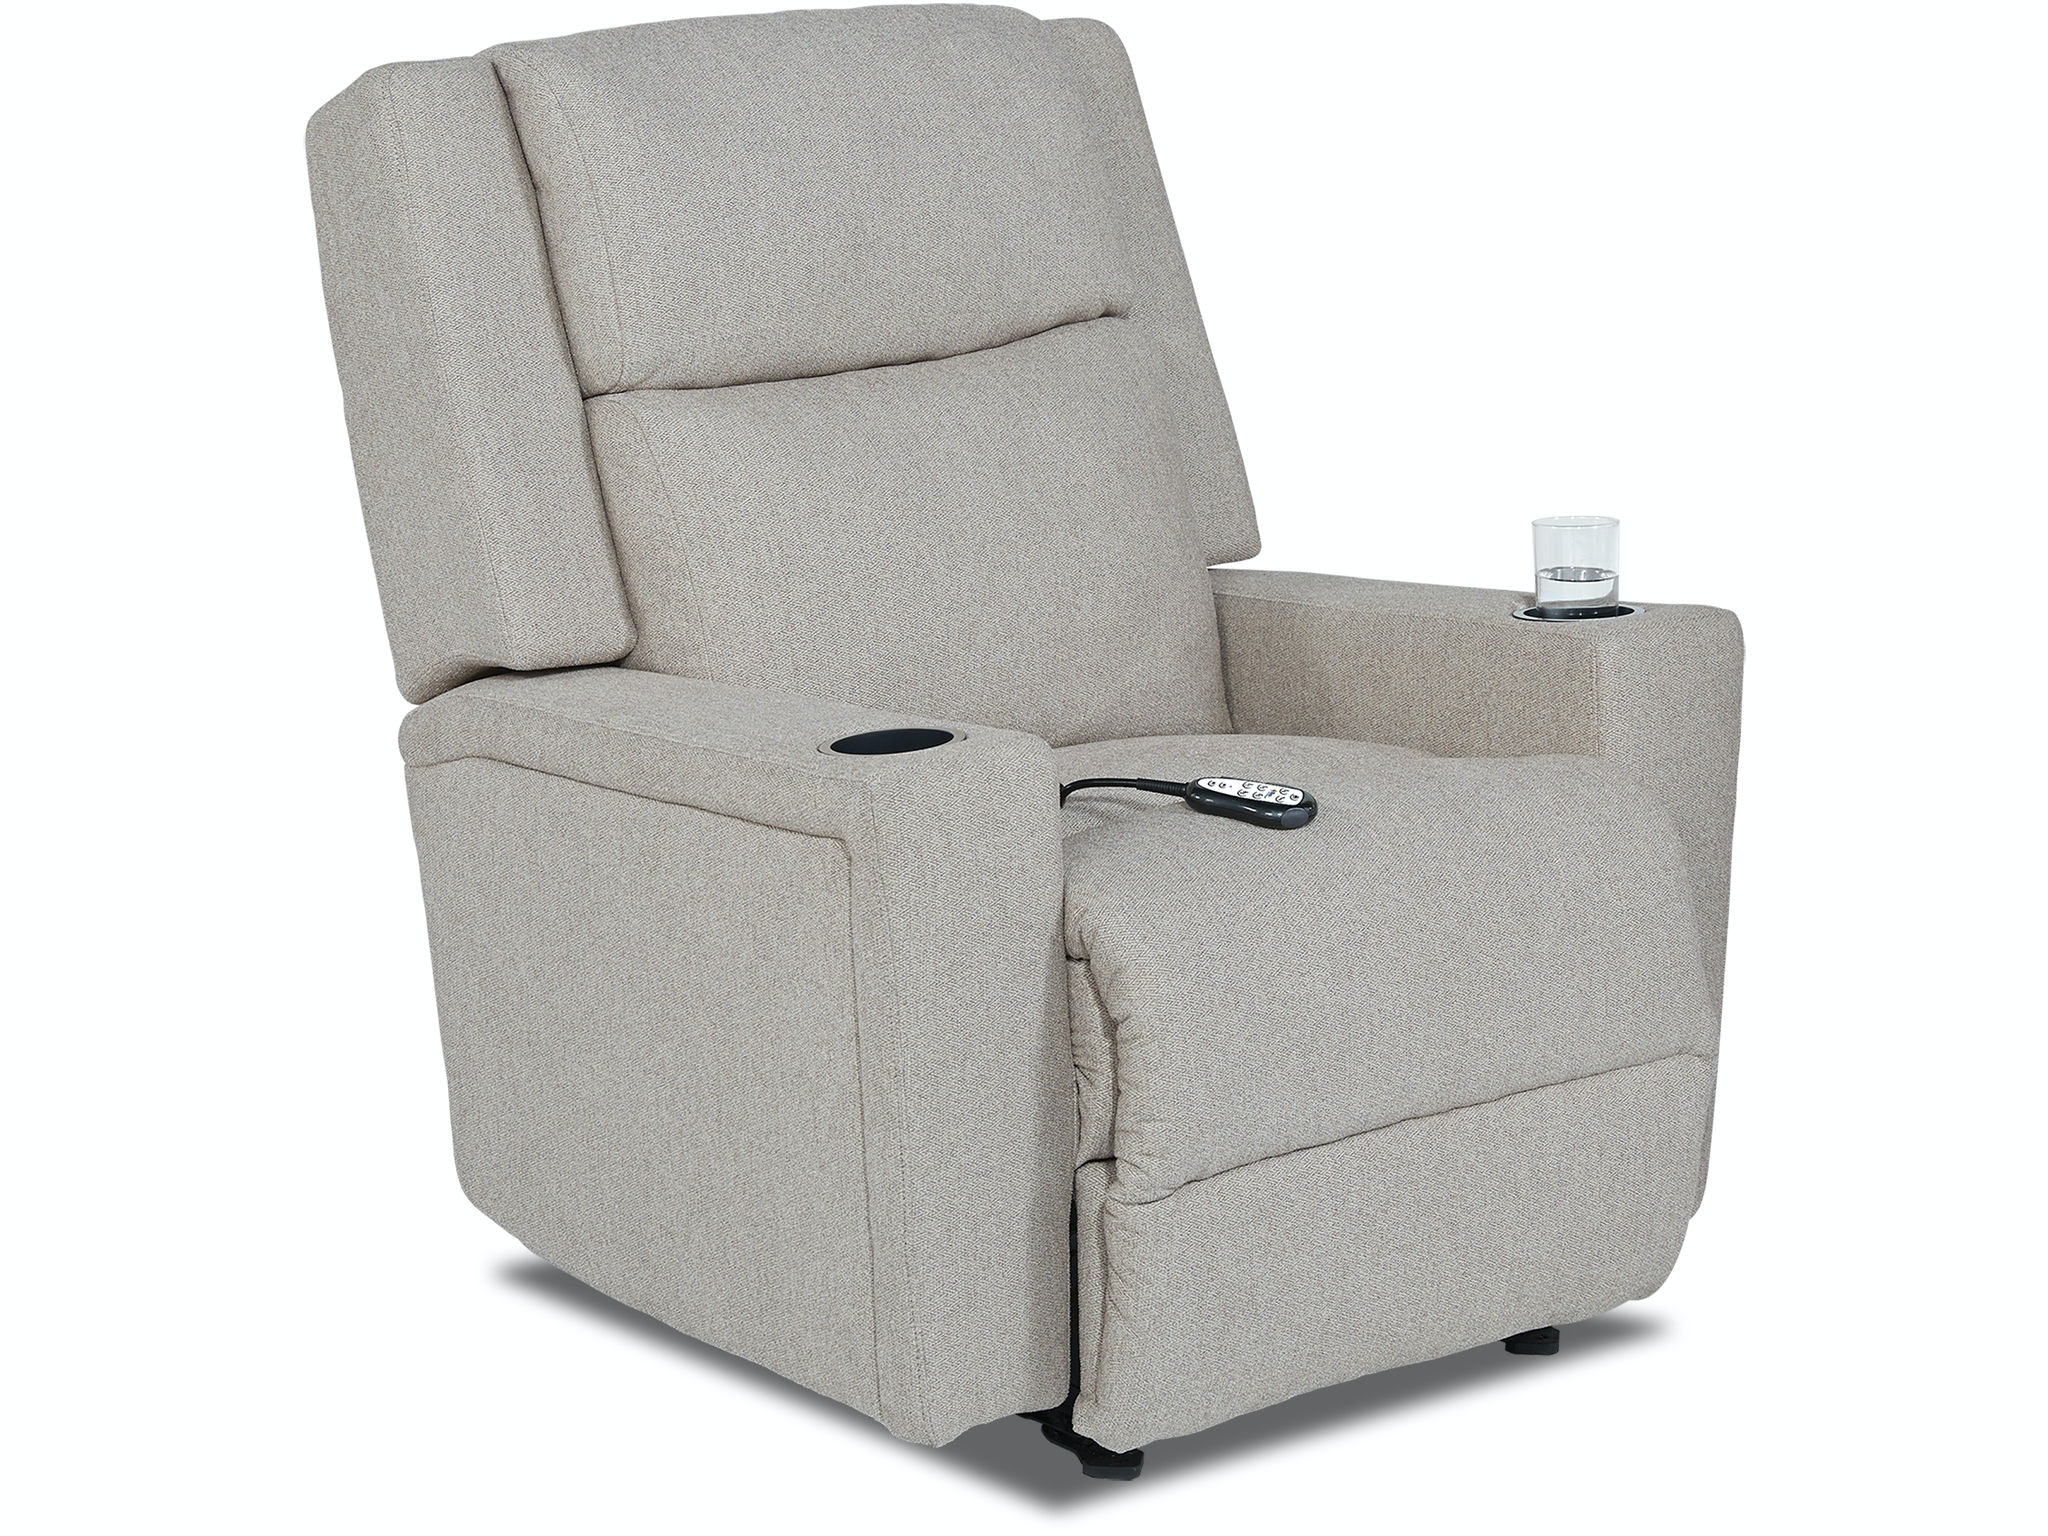 Best Home Furnishings Power Reclining Chair With Cup Holders 738475 Custom